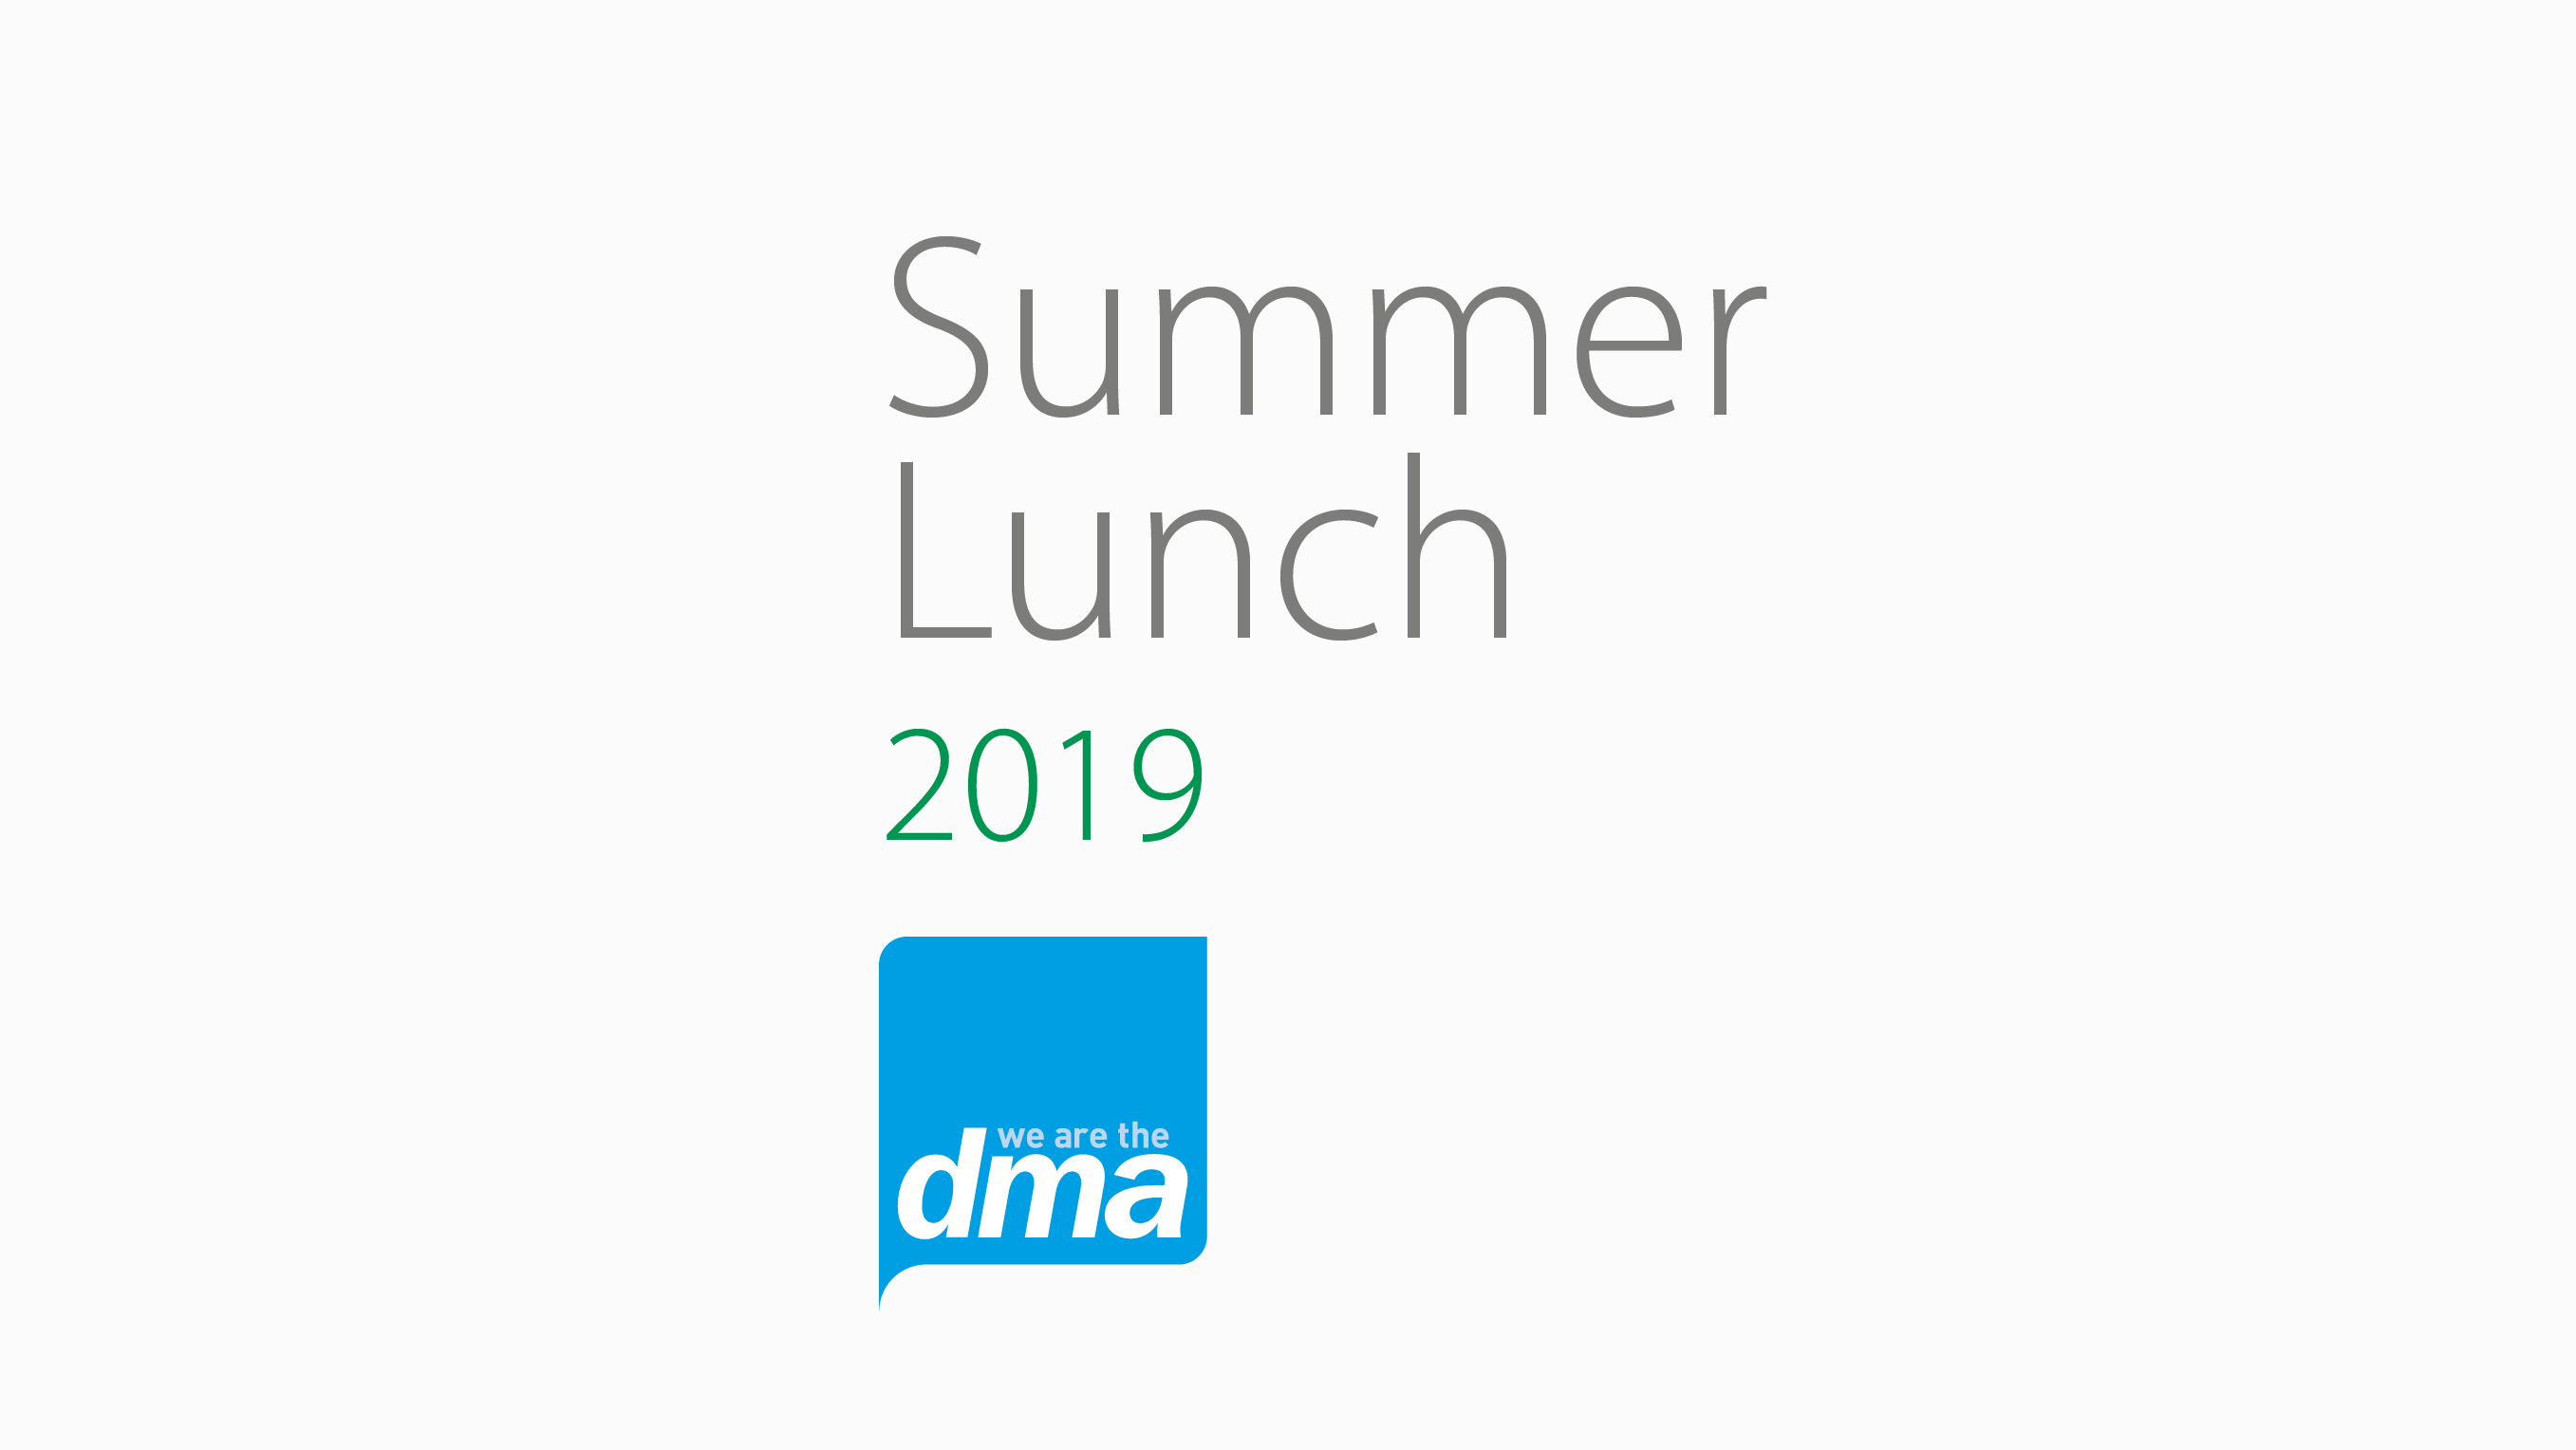 Summer-Lunch-2019-01.png